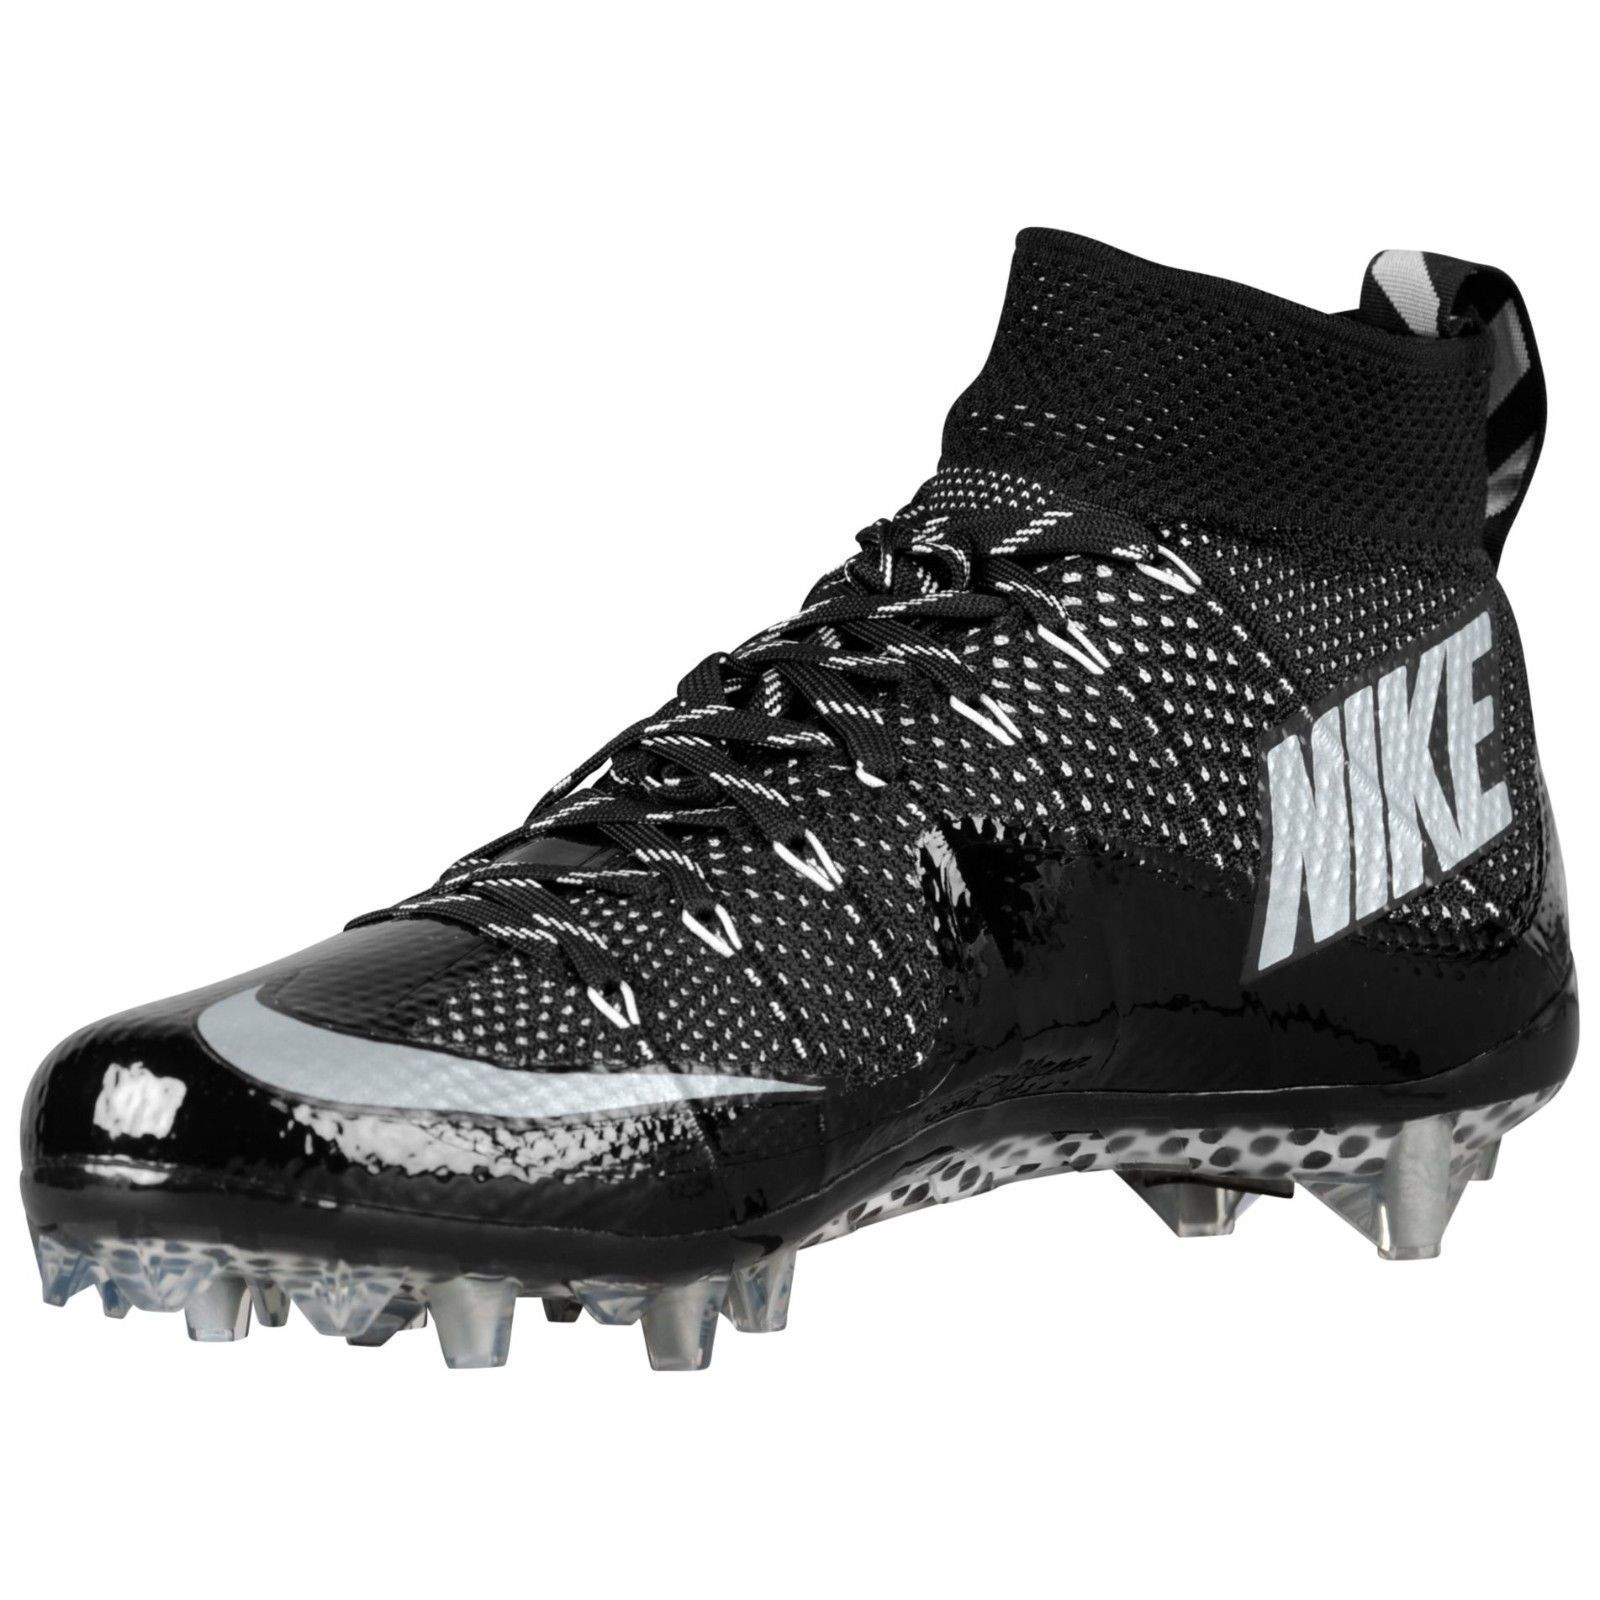 official photos 144e8 dae6b Nike Vapor Untouchable  NEW  Football Cleats Black White  698833-010